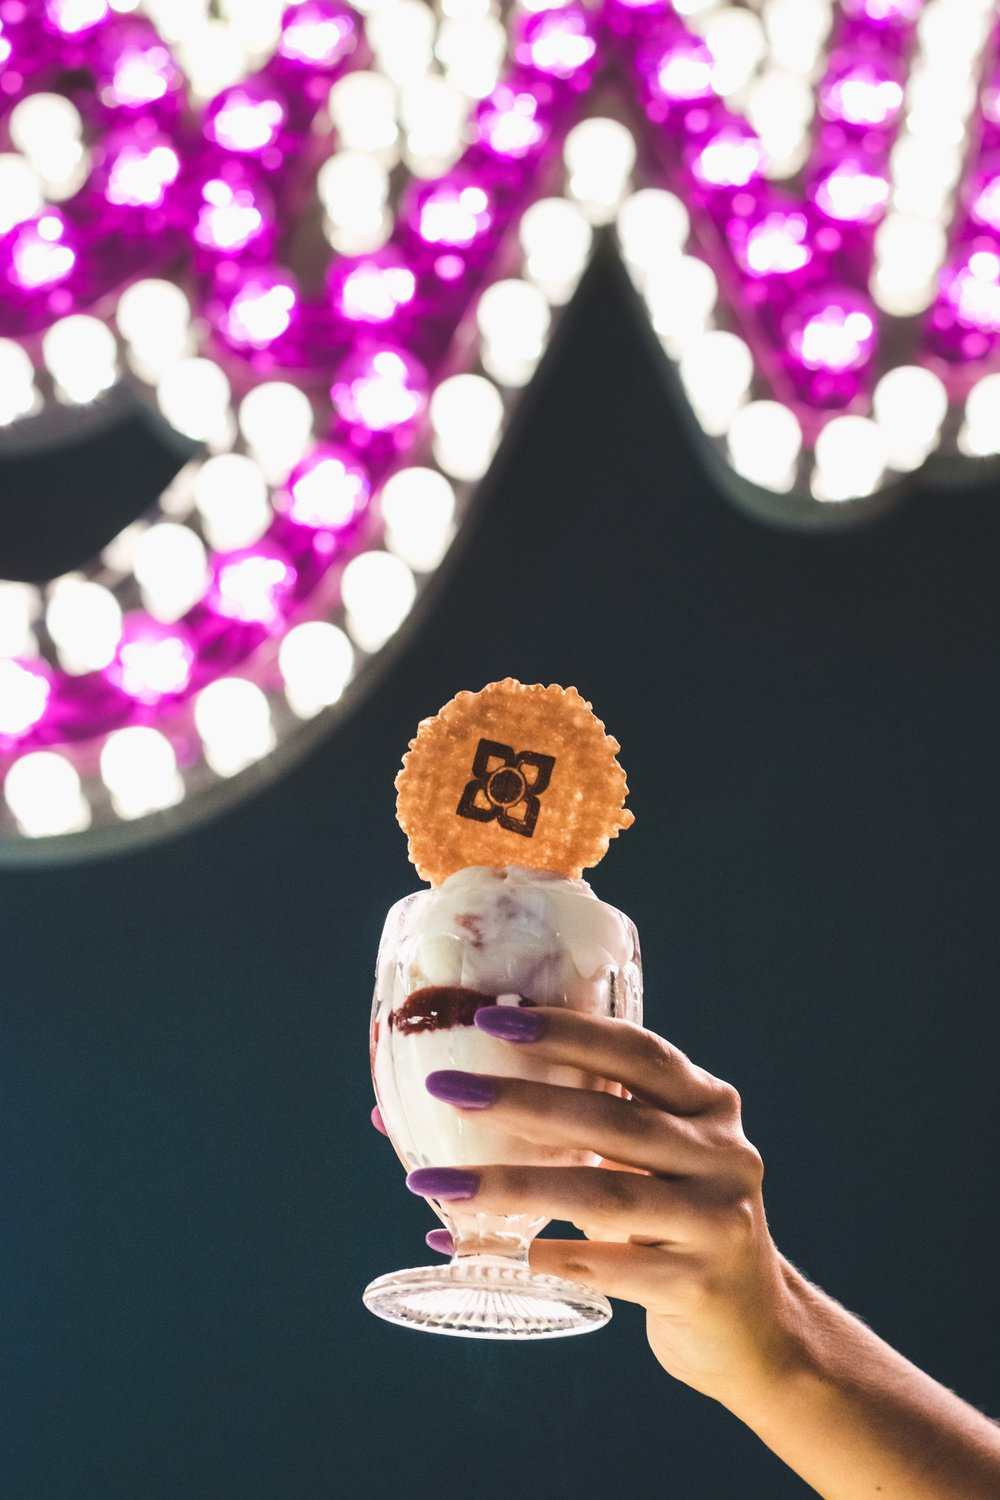 A cup of ice cream topped with a wafer in front of the Ruby Violet sign